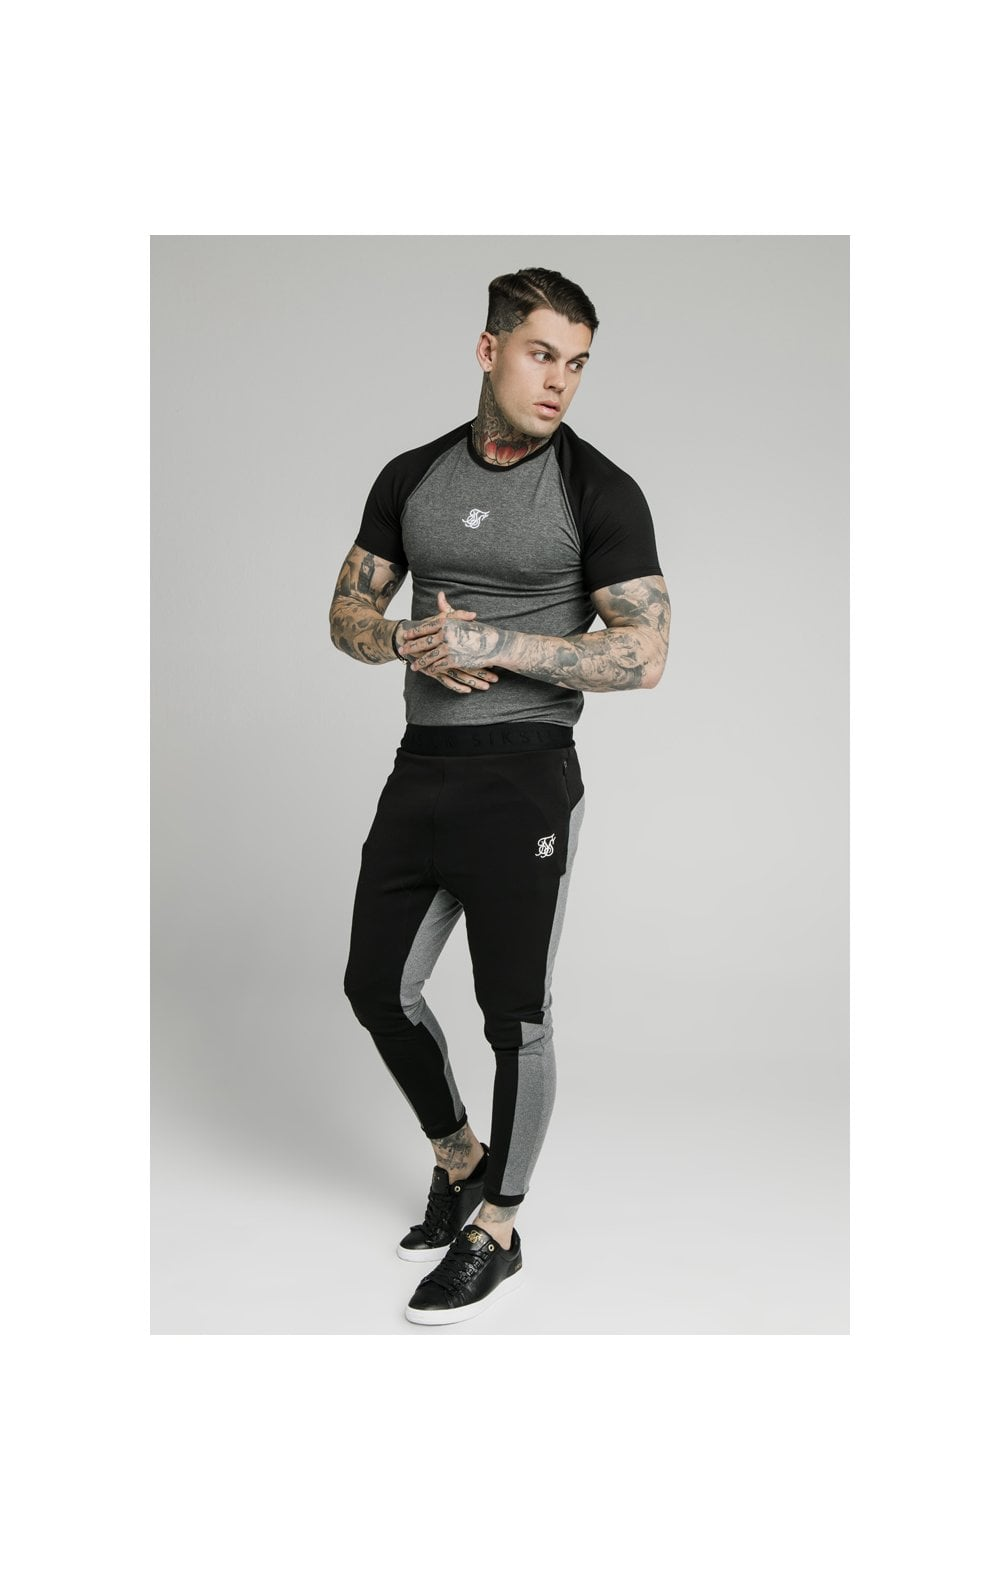 SikSilk Endurance Gym Tee - Black & Grey (3)